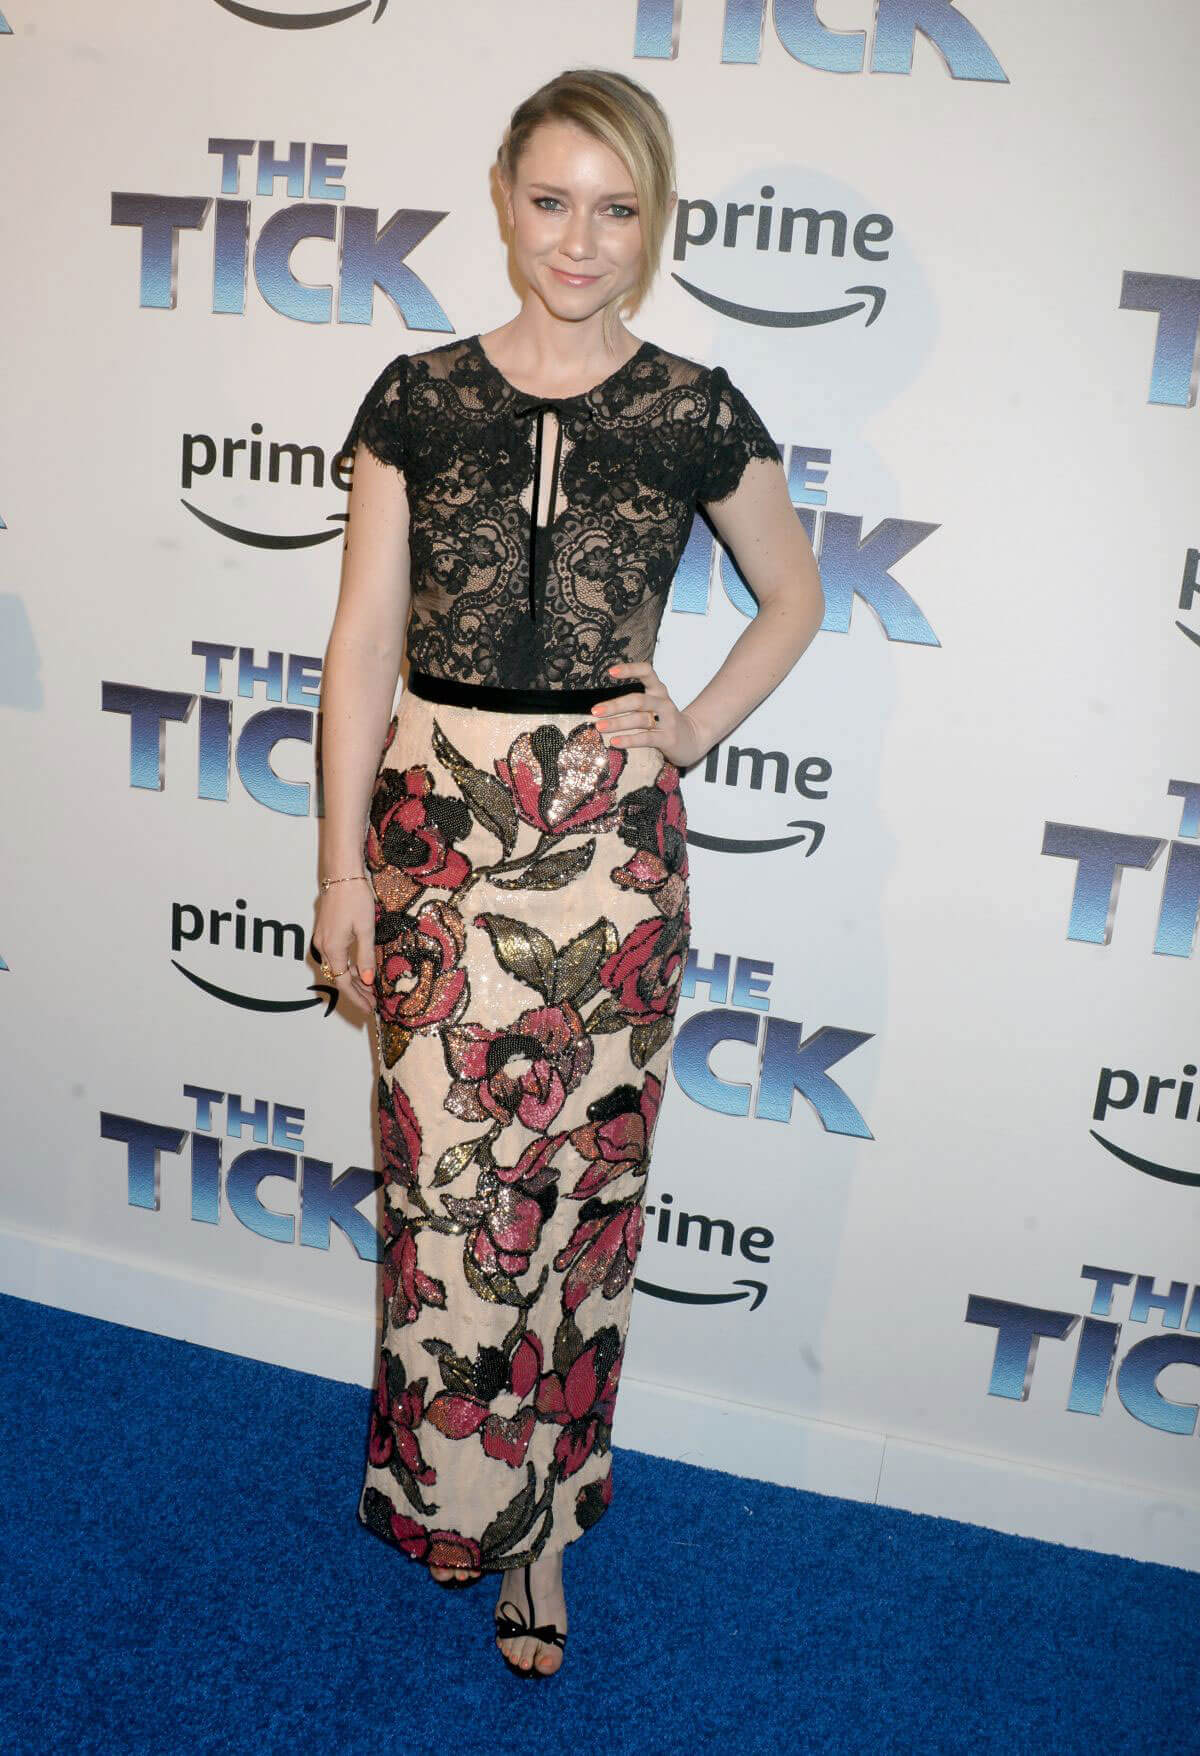 Valorie Curry Stills at The Tick Premiere in New York